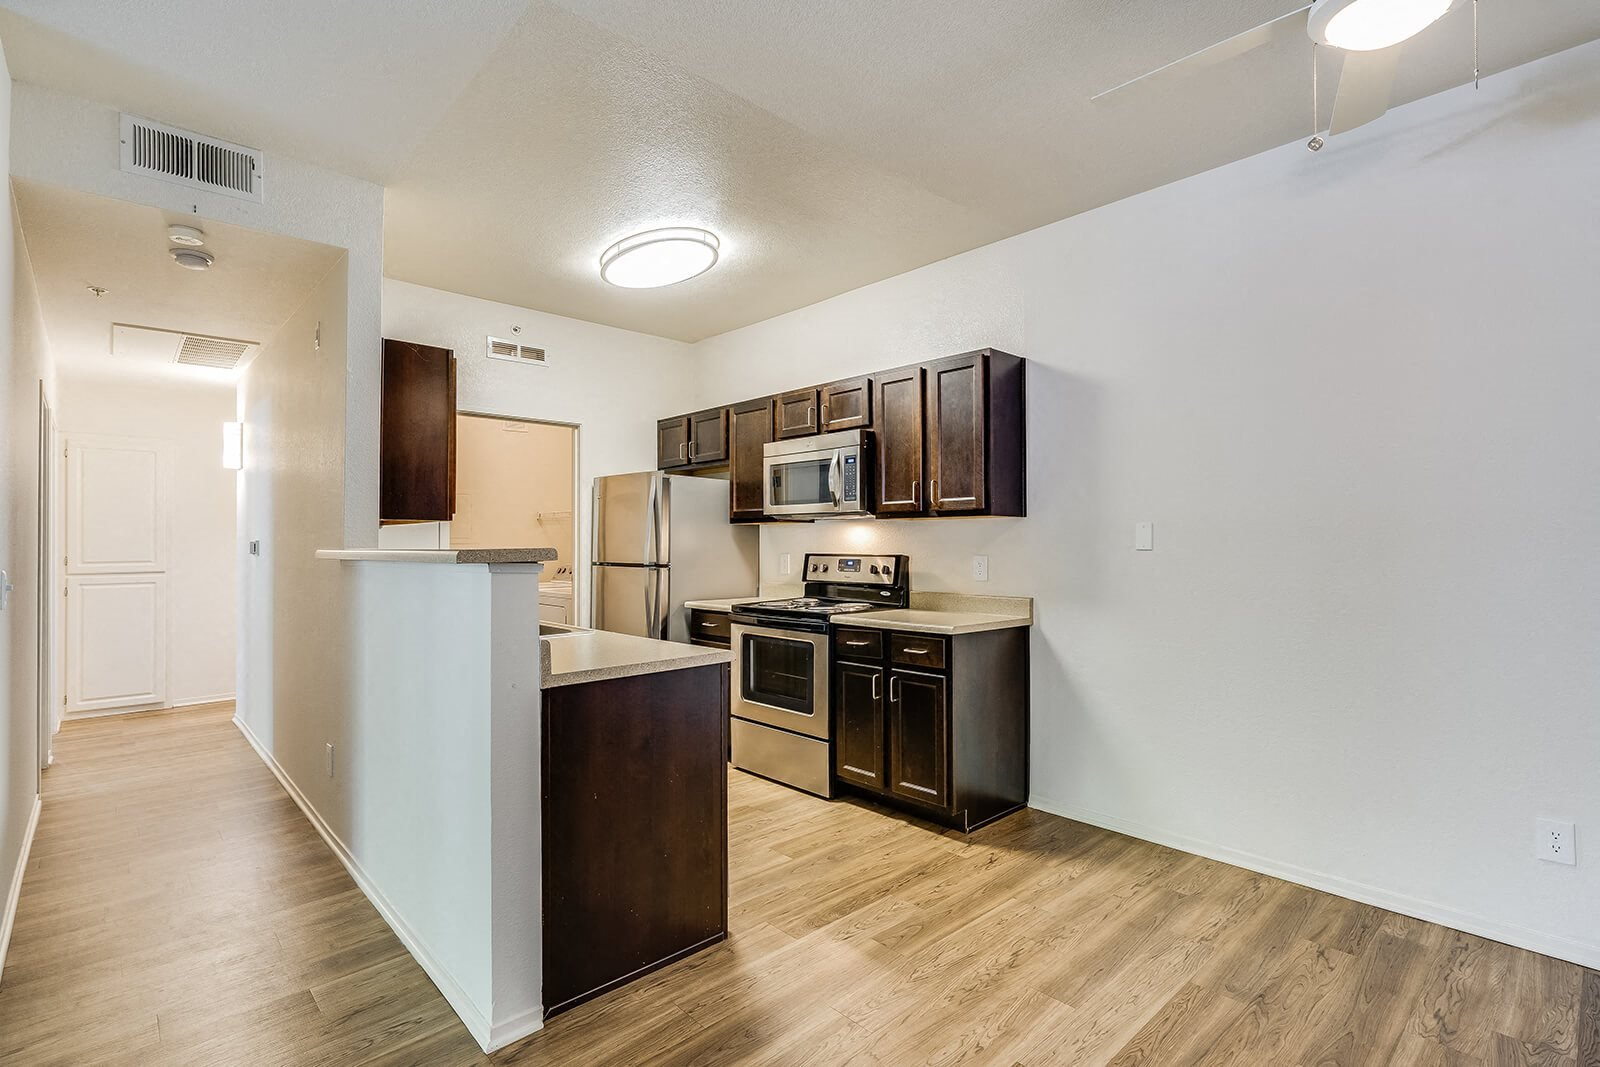 Open Floor Plan at Mission Pointe by Windsor, 1063 Morse Avenue, Sunnyvale